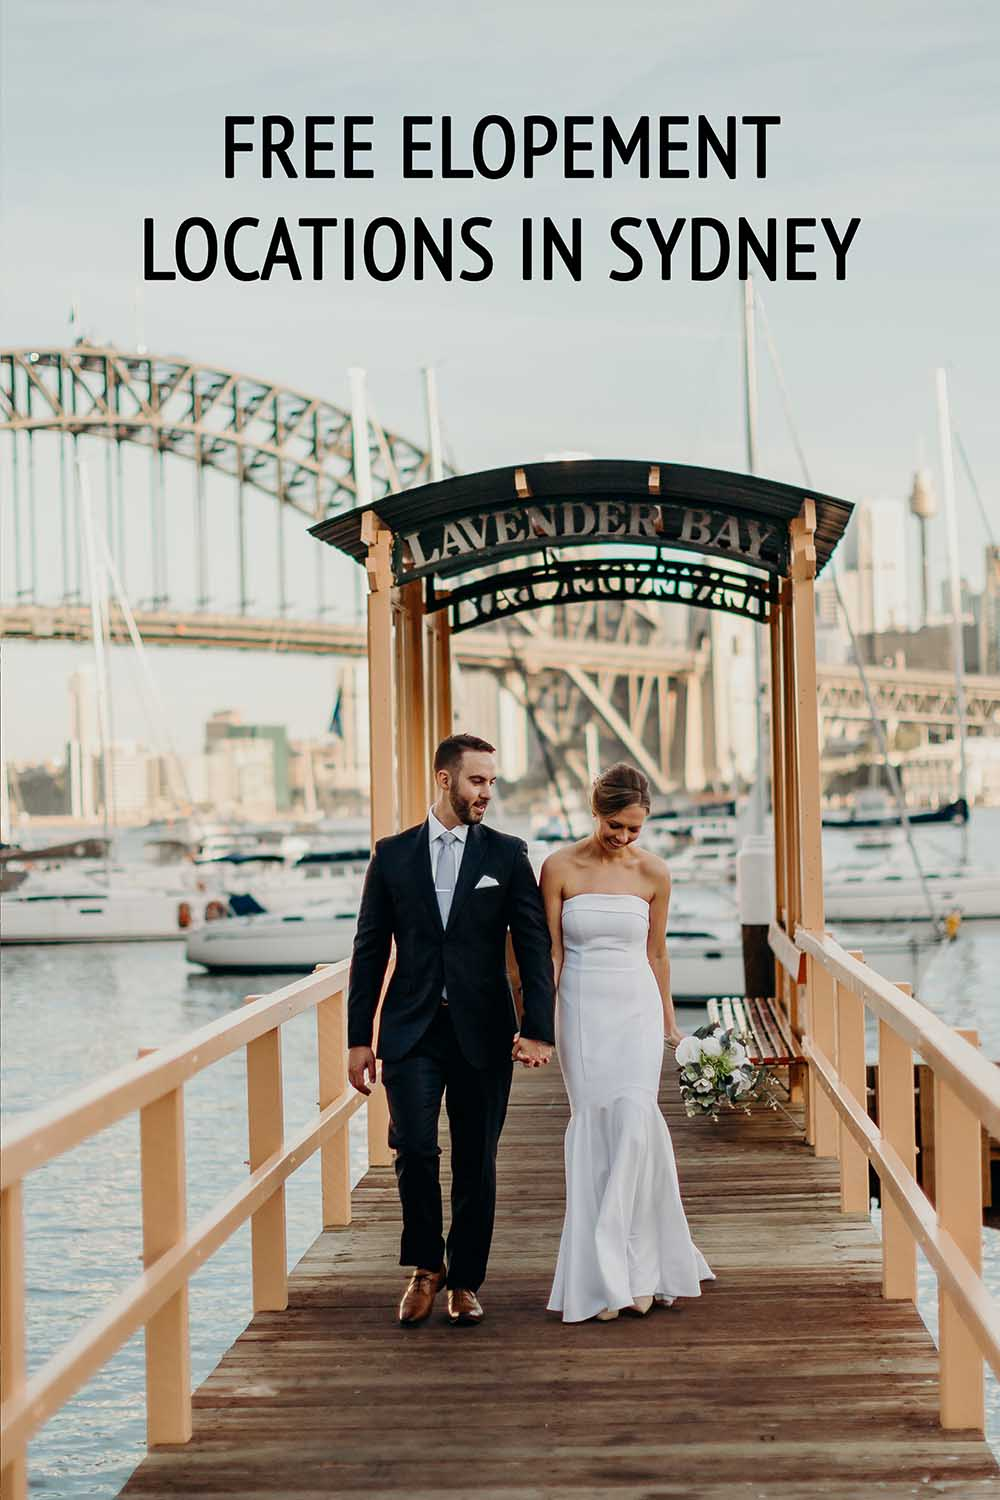 free elopement location in sydney